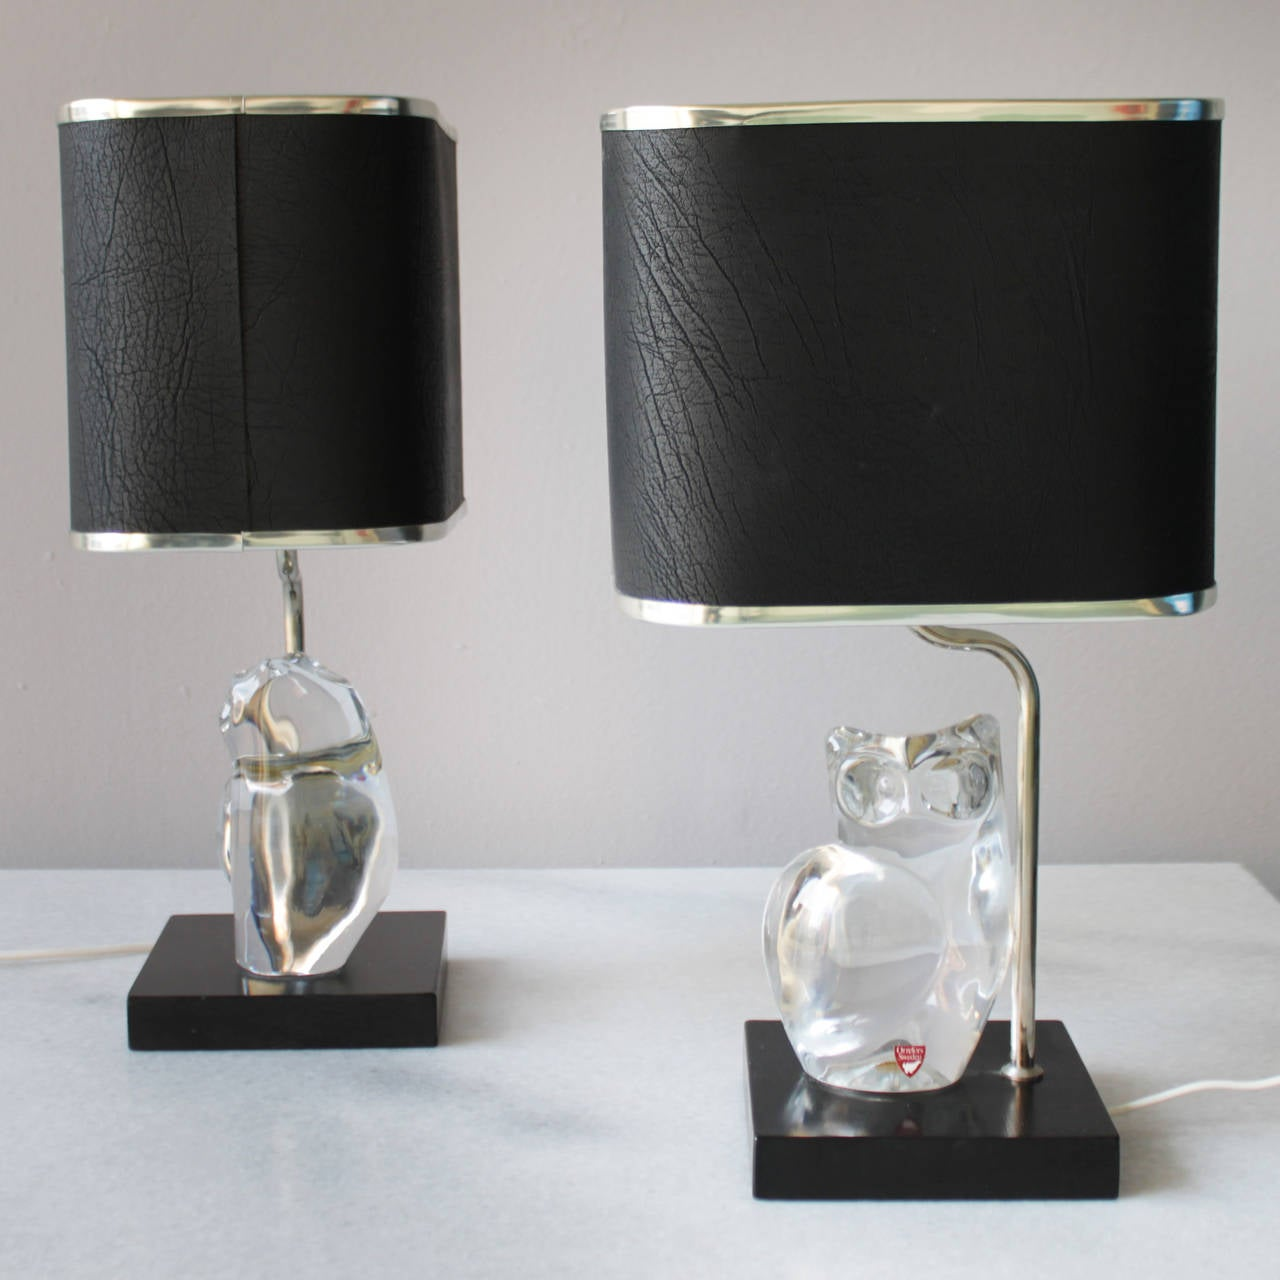 Pair of Crystal Lamps by Olle Alberius for Orrefors For Sale 2